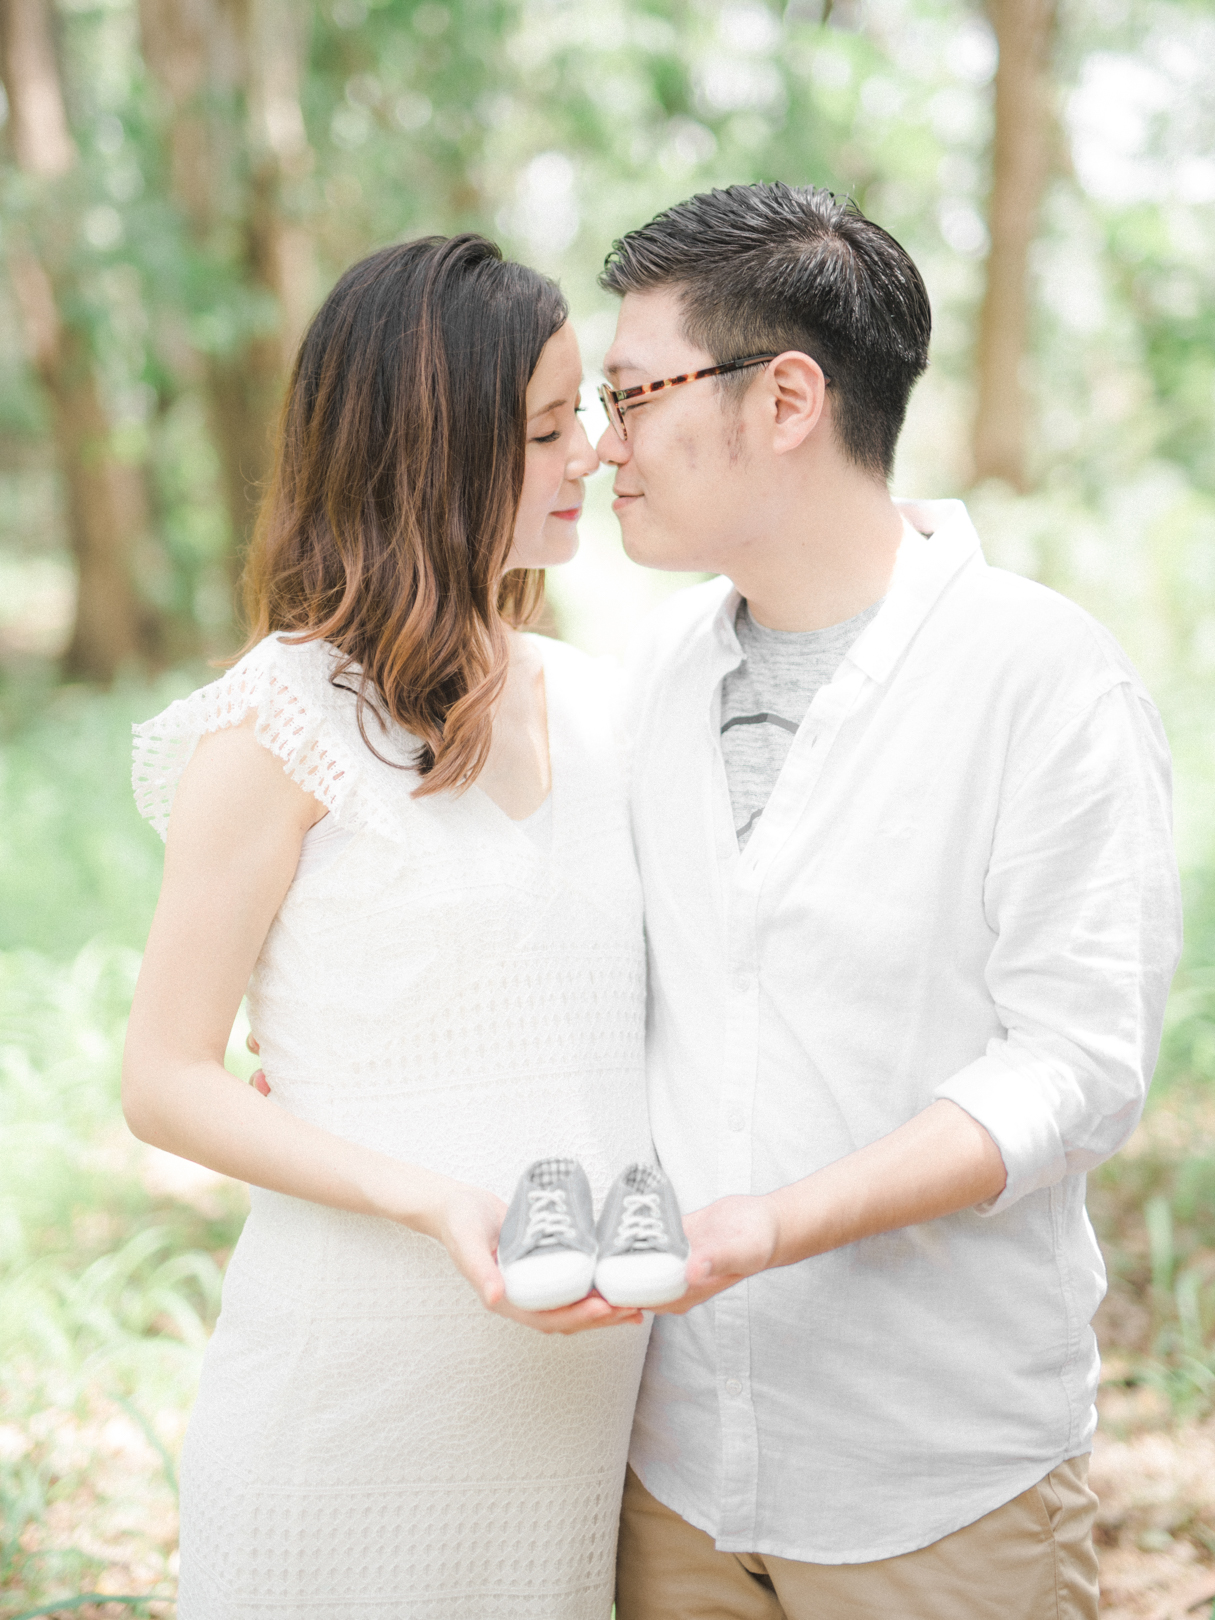 A-Forest-Maternity-Session_00018.jpg